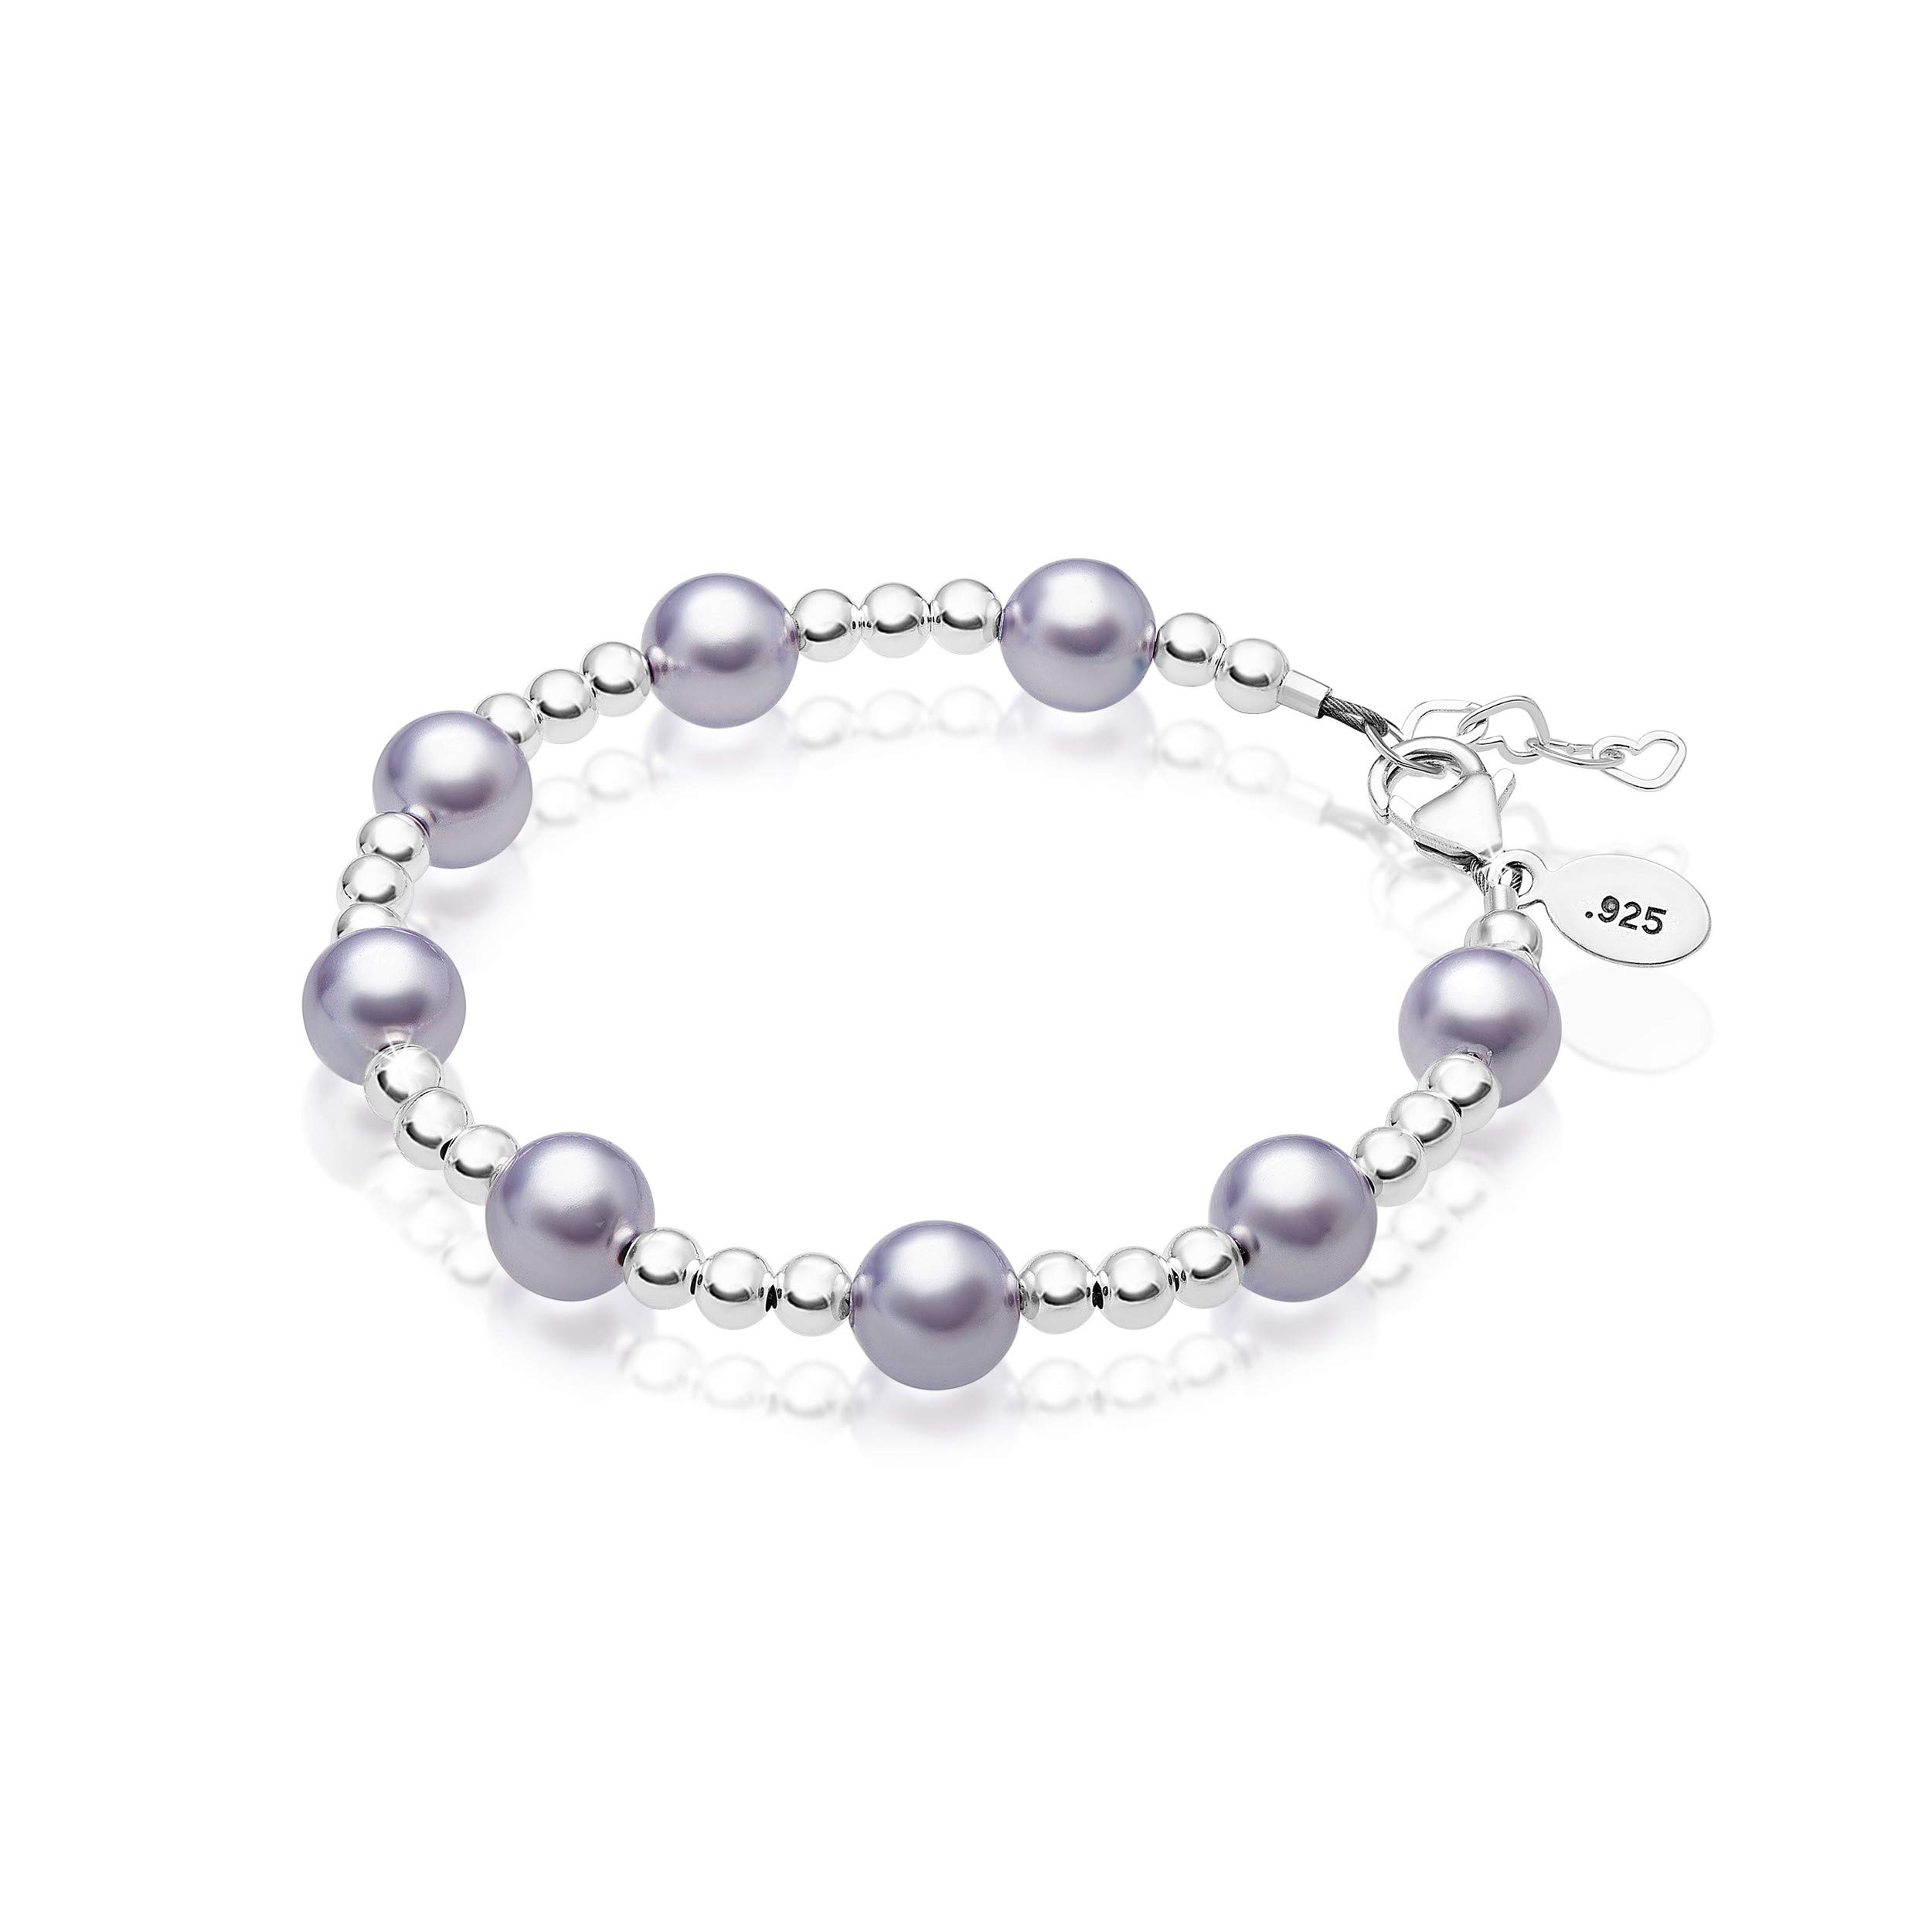 Baby Crystals Beautiful Sterling Silver Bracelet for Newborns & Infants   Baby Girl Gifts   Newborn Jewelry Embellished with Simulated Pearls & Crystals from Swarovski (0-3 Months)